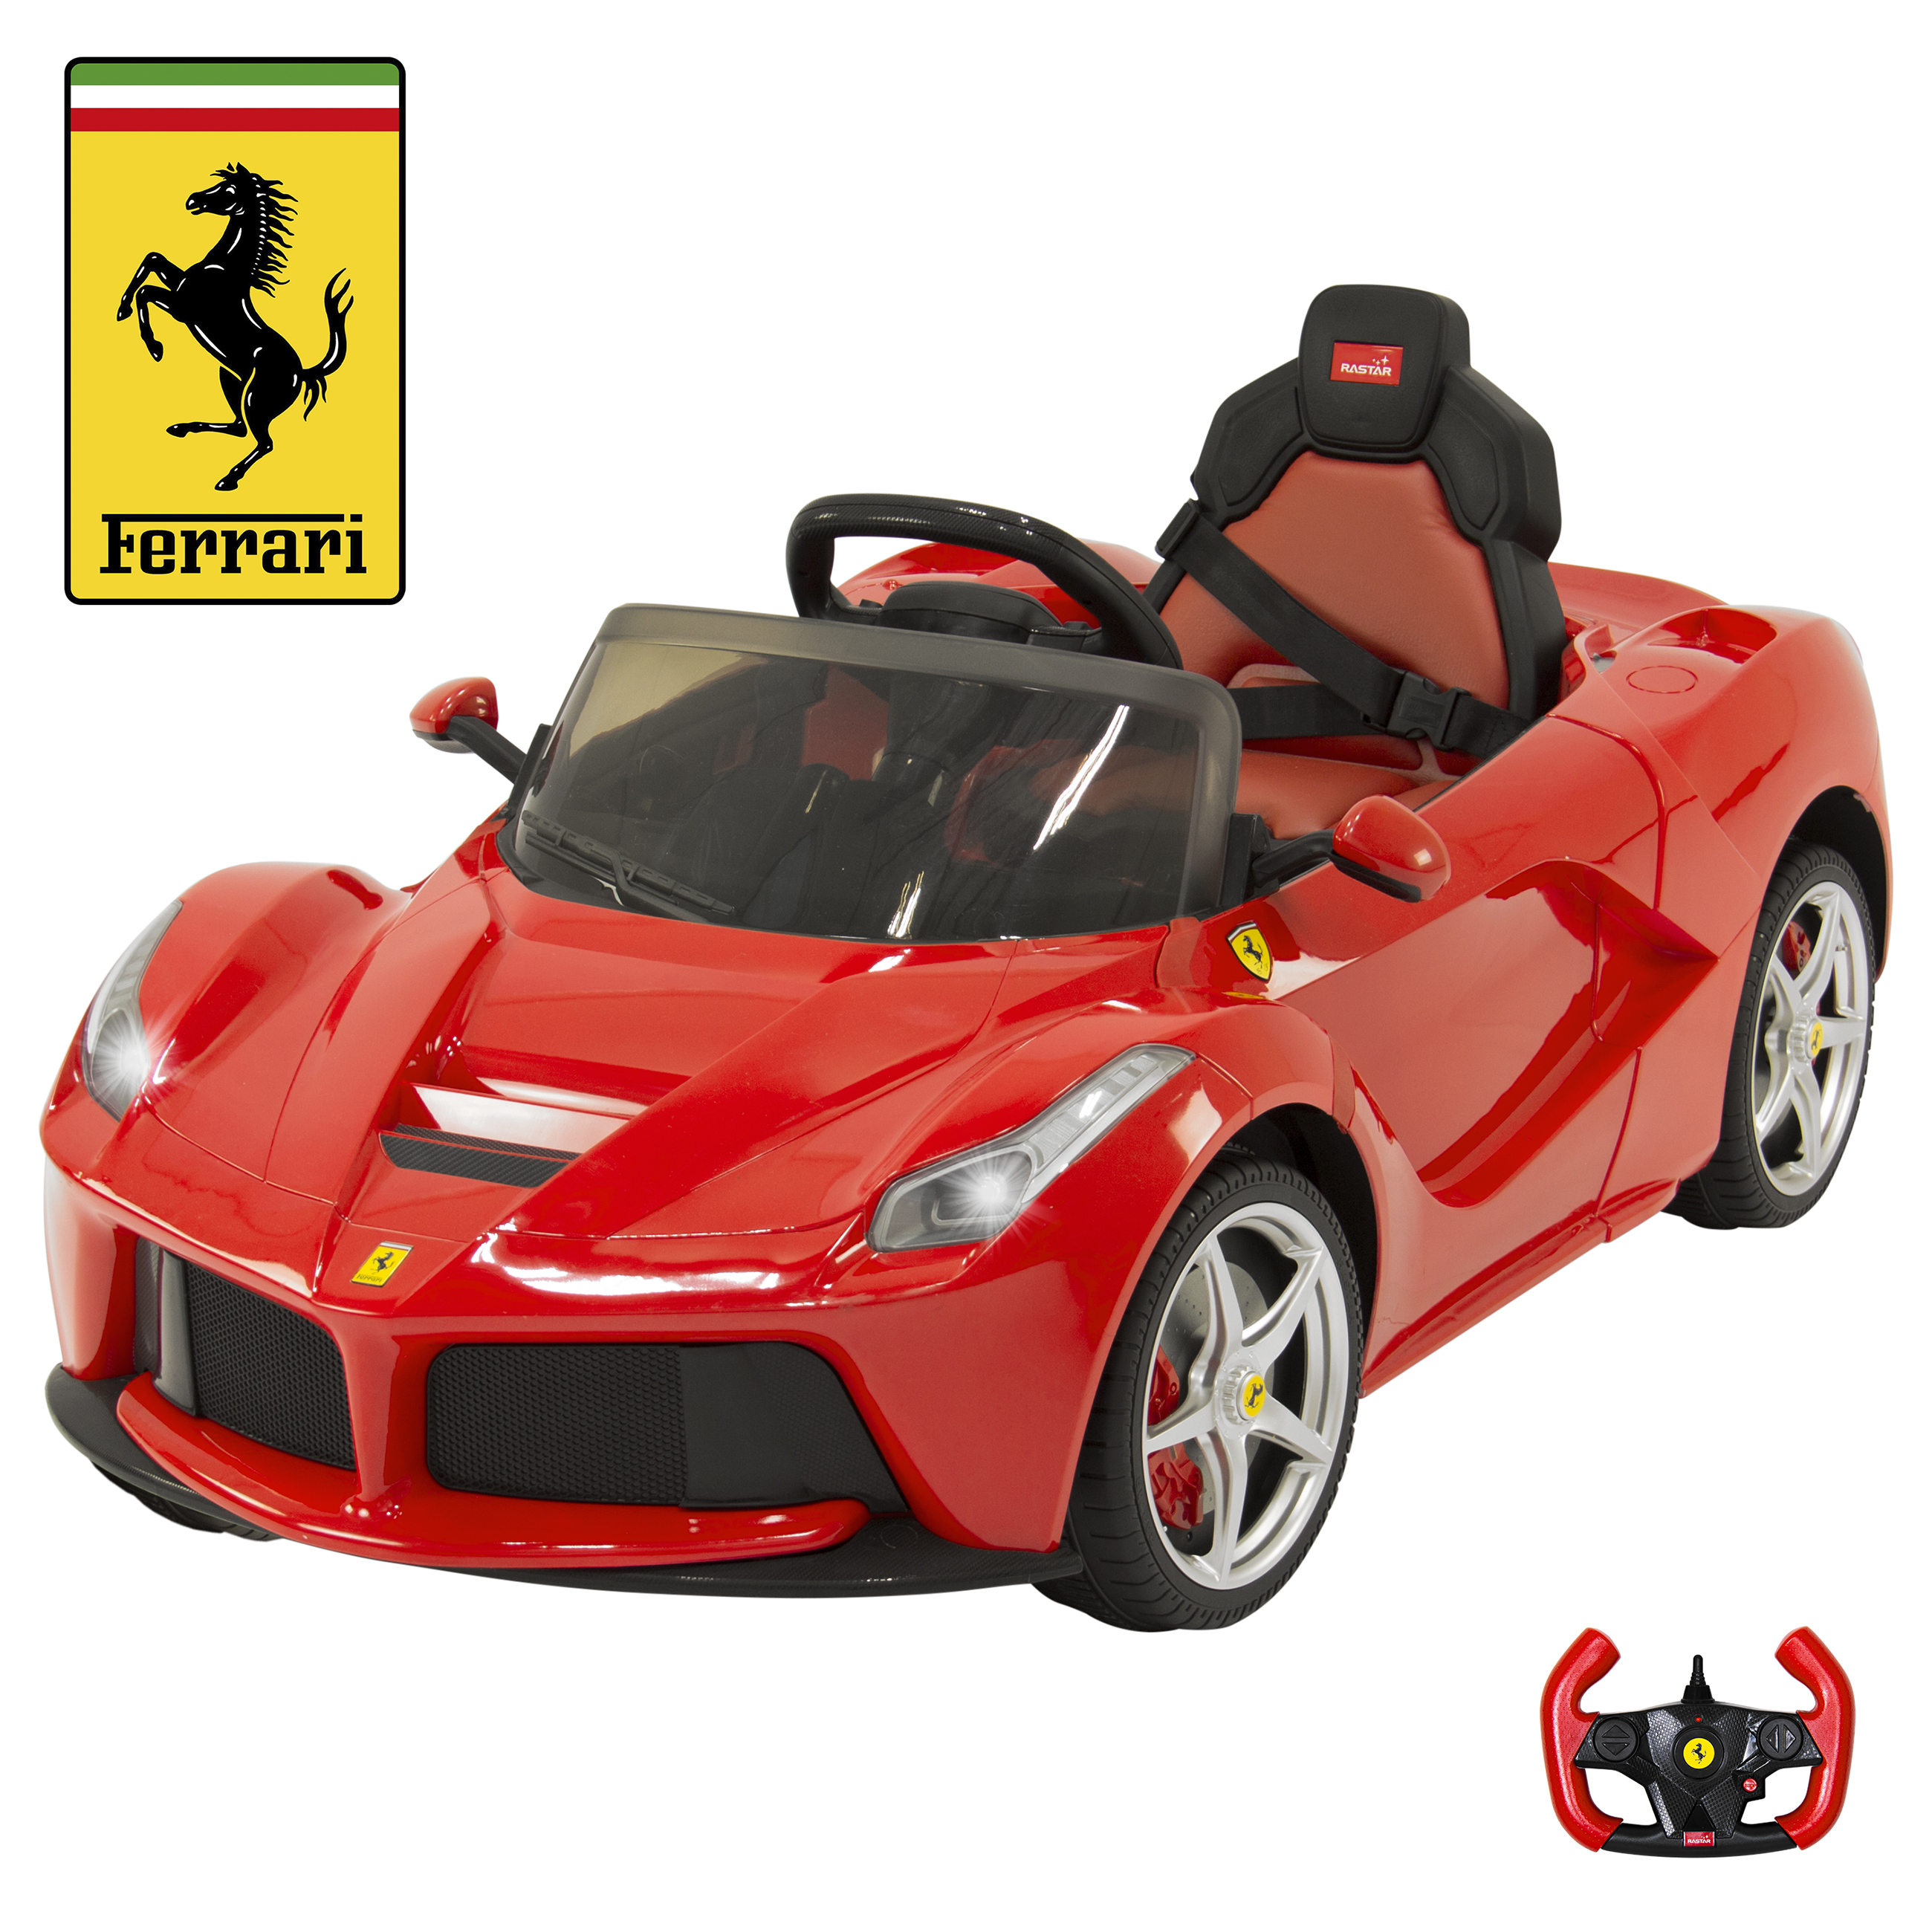 Bentley Gtc 12v Ride On Kids Battery Power Wheels Car Rc: 12V Electric Kids Ride On LaFerrari RC Remote Control Car